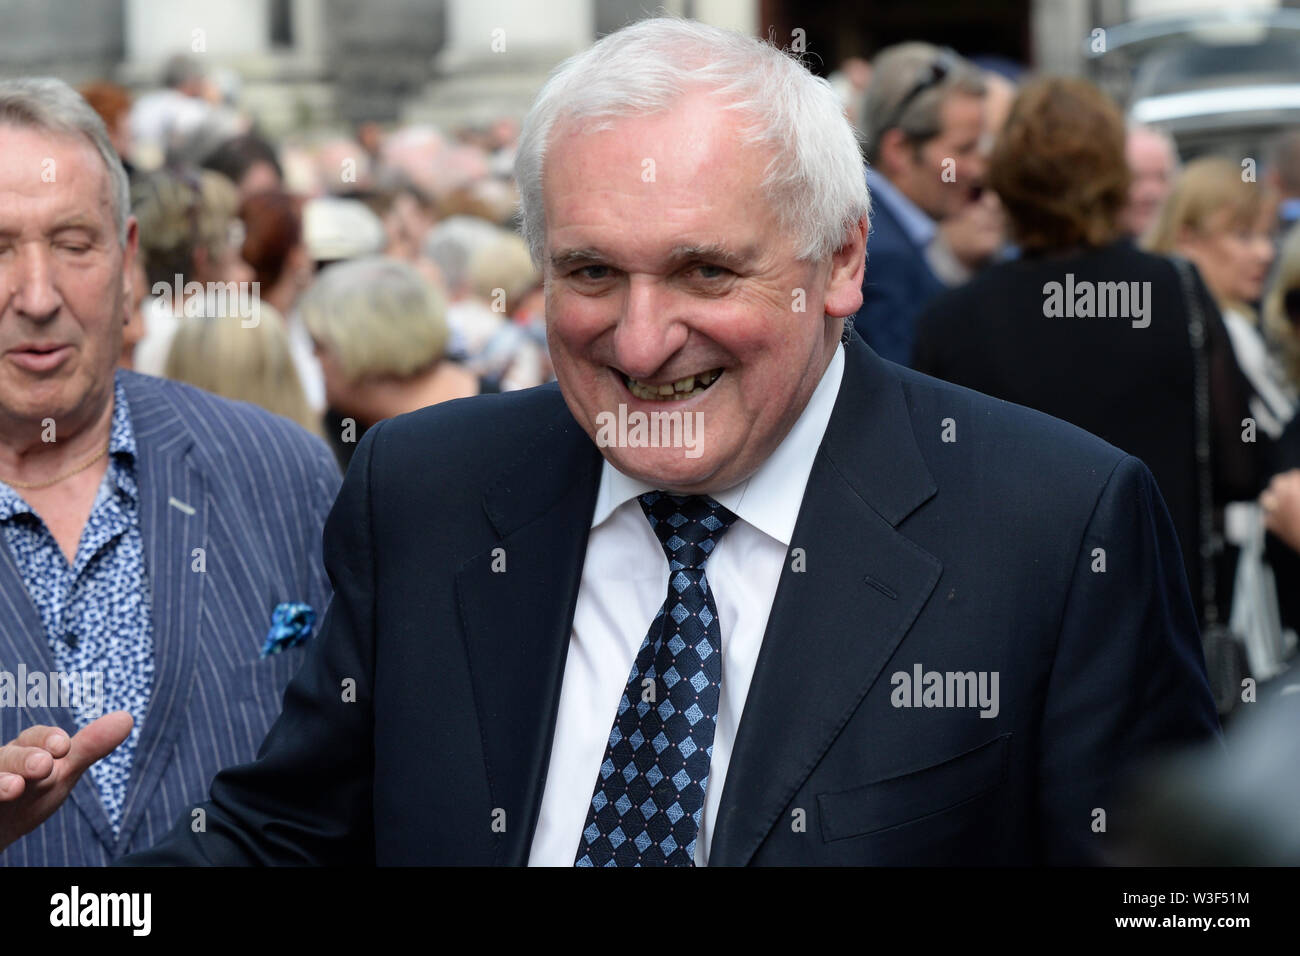 Former Taoiseach Bertie Ahern arrives for the funeral of Father Ted star Brendan Grace at the Church of St. Nicholas of Myra, Dublin. - Stock Image